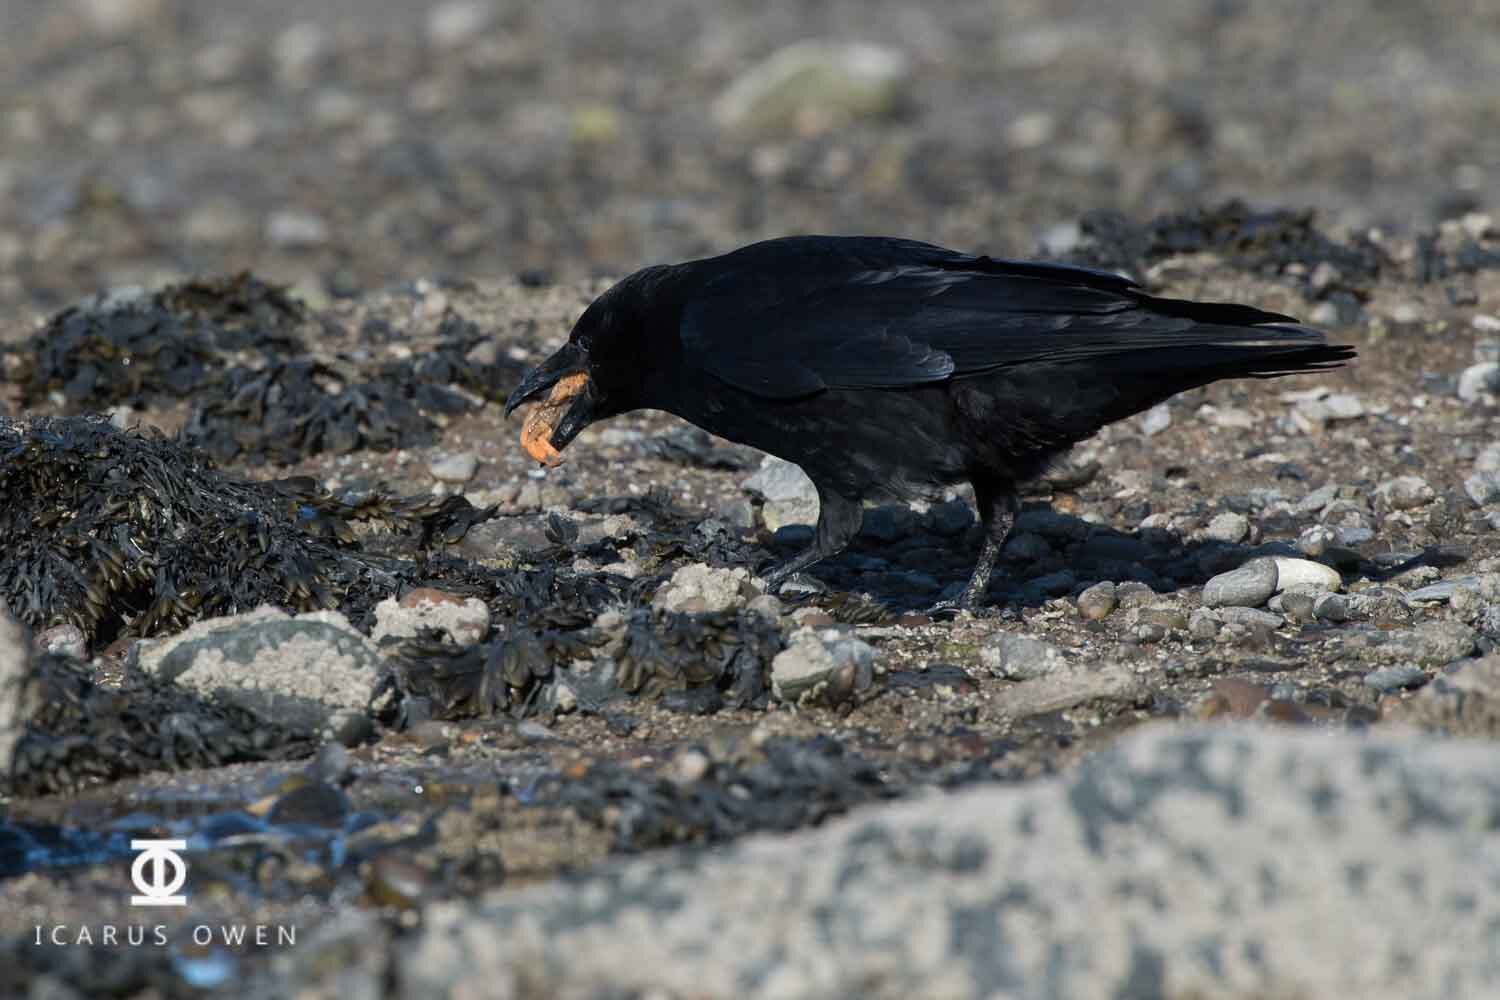 Crow eating mussel at Ythan Estuary, Scotland.